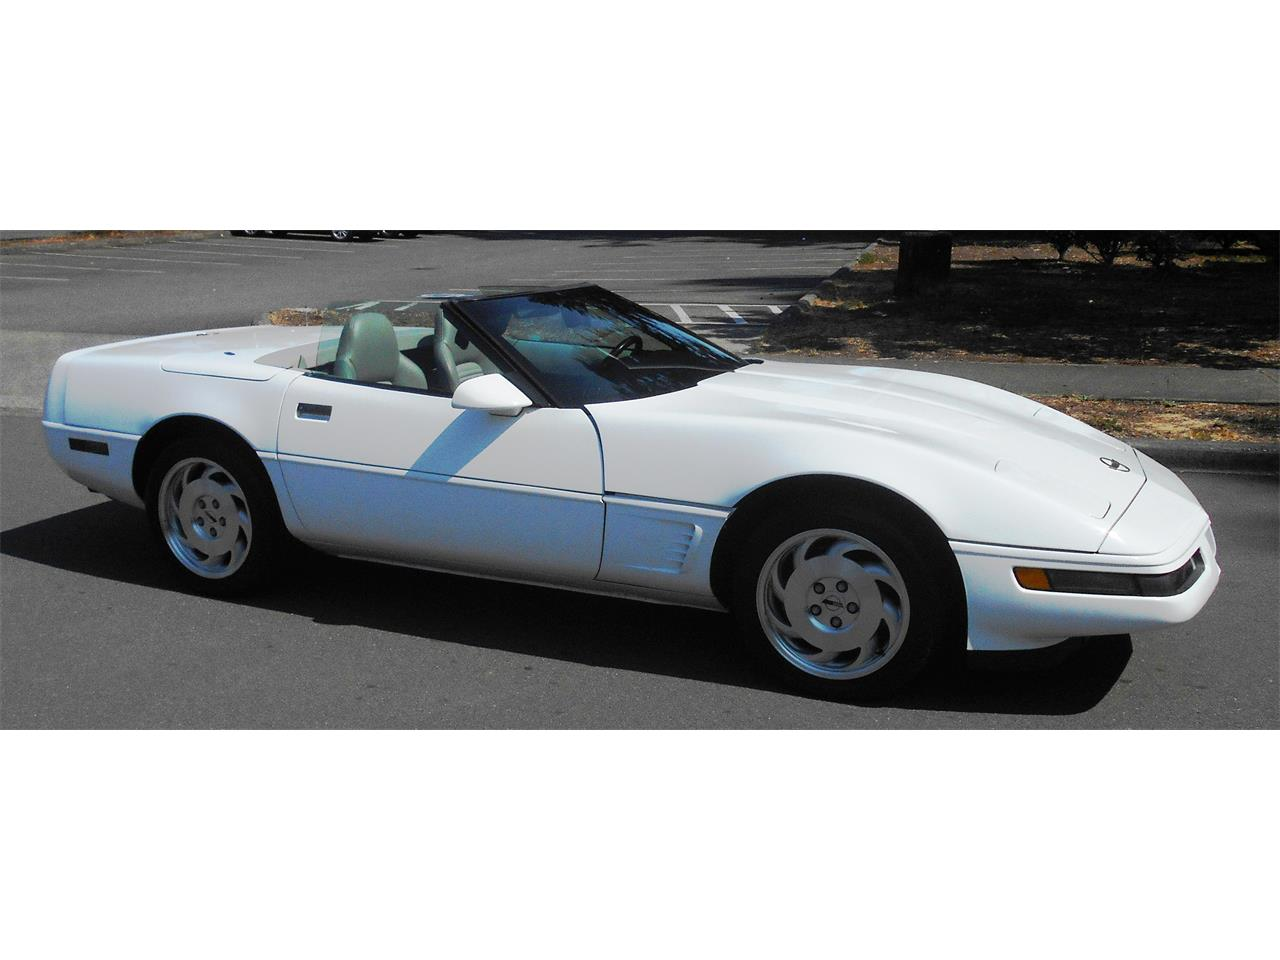 Large Picture of '95 Chevrolet Corvette located in Washington - $9,950.00 - LPUB